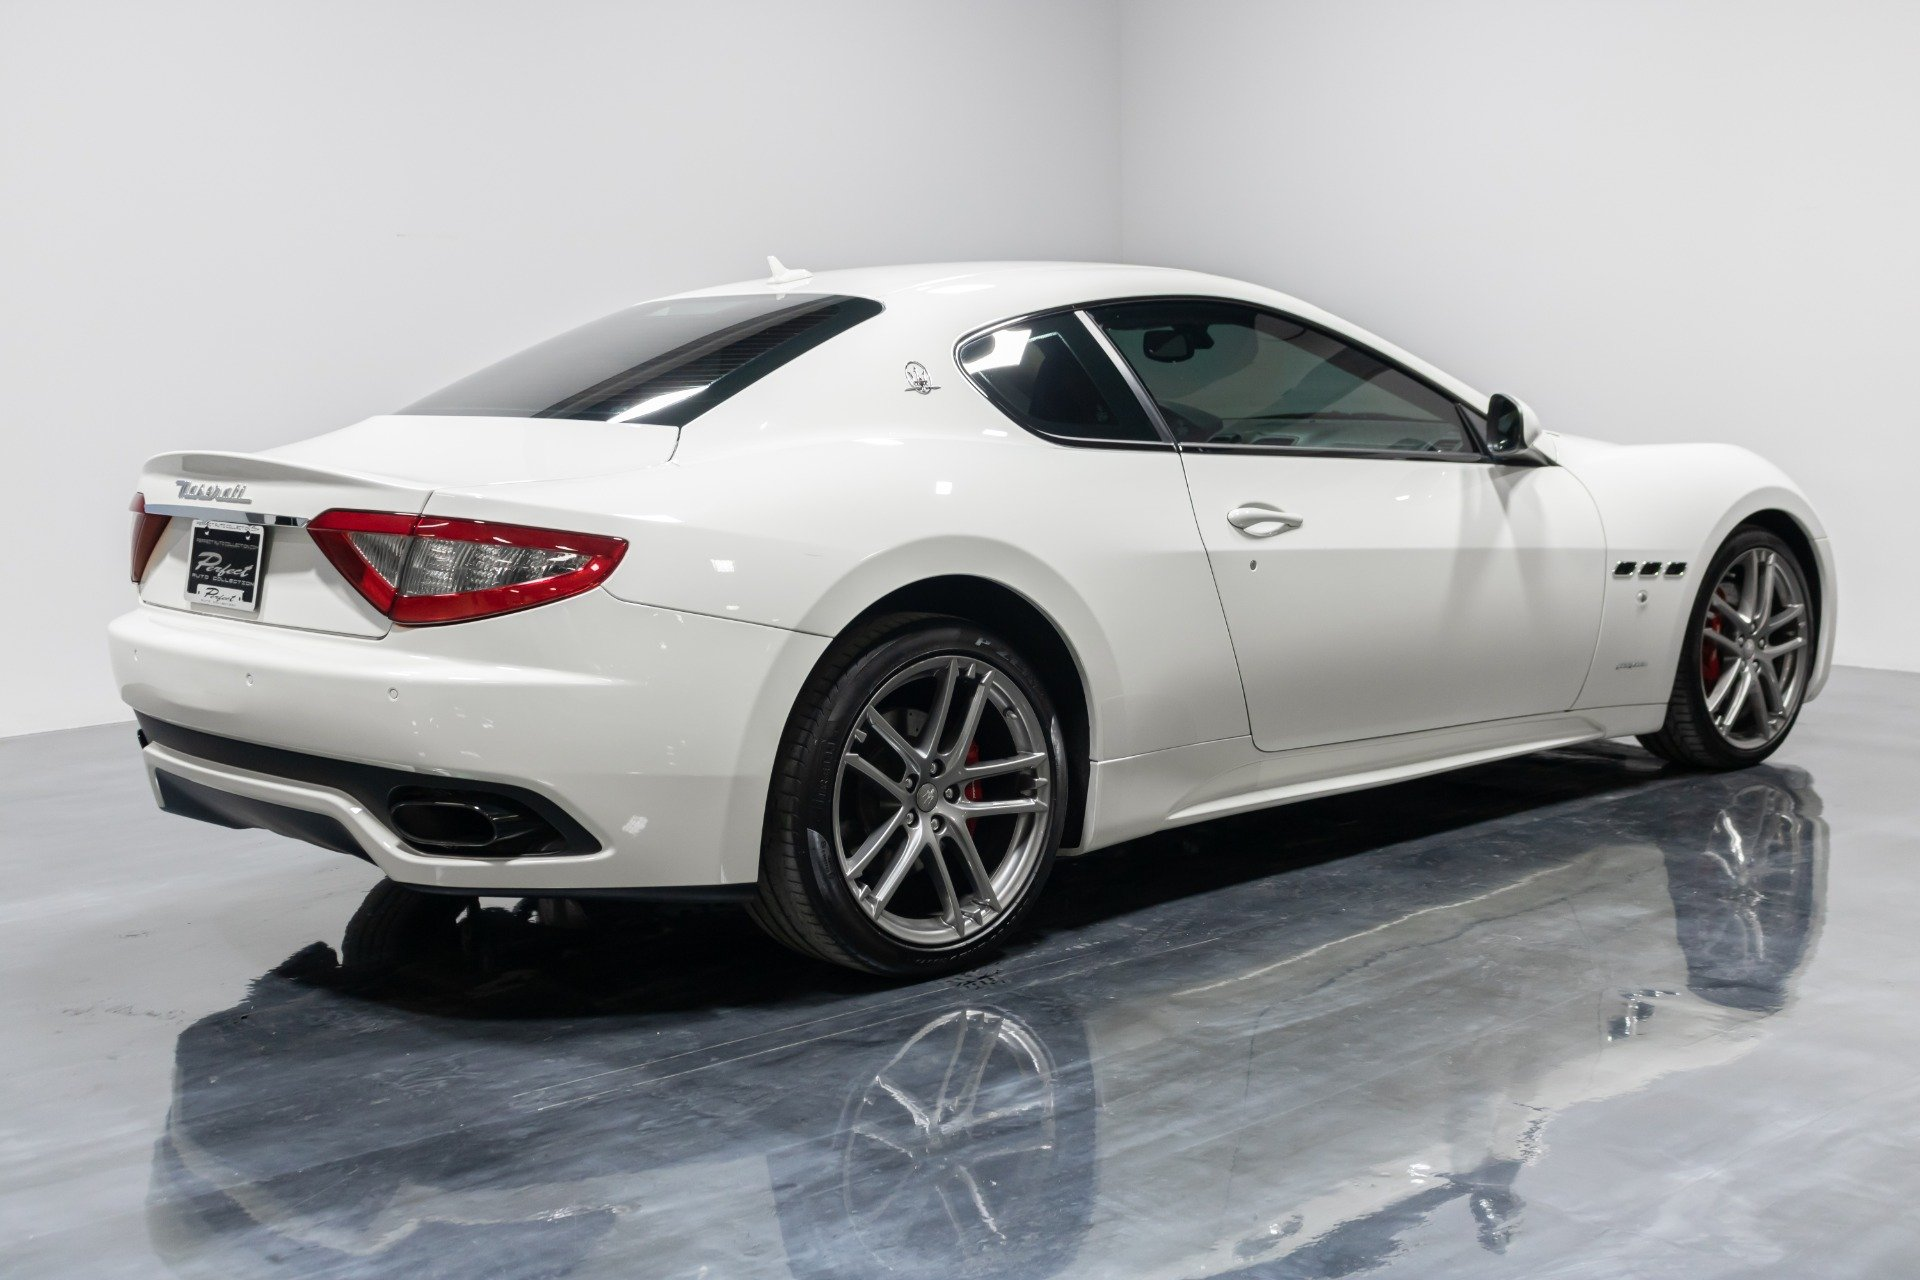 Used 2015 Maserati GranTurismo Sport for sale Sold at Perfect Auto Collection in Akron OH 44310 3